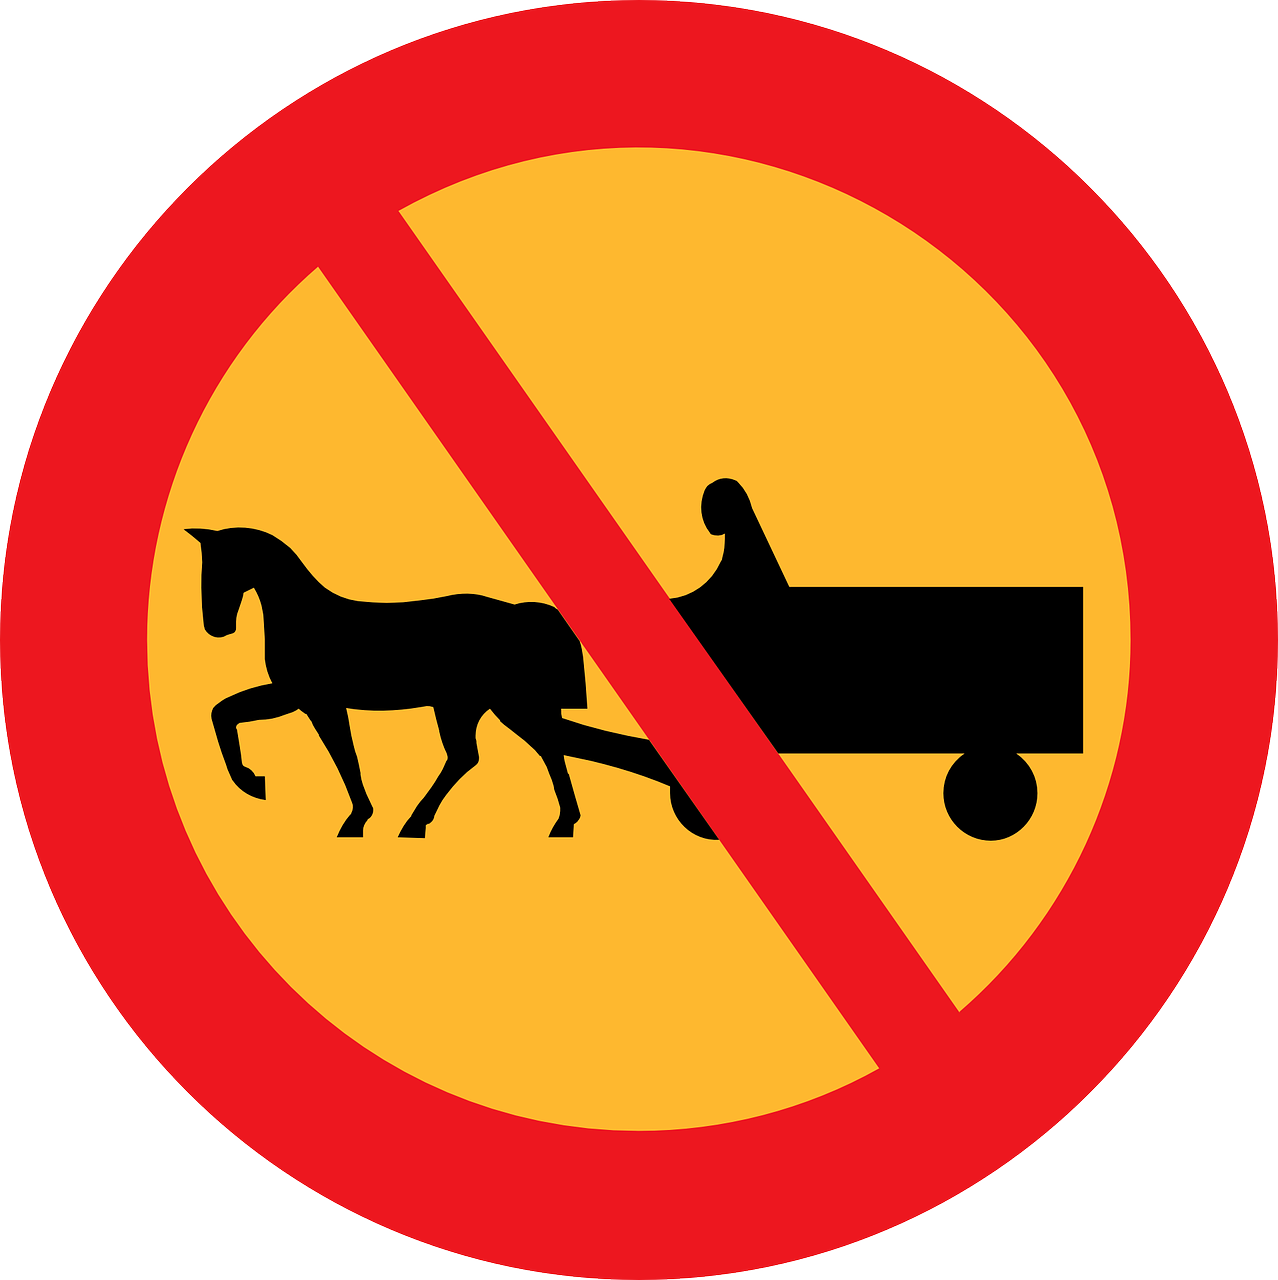 no carriages road sign roadsign free photo